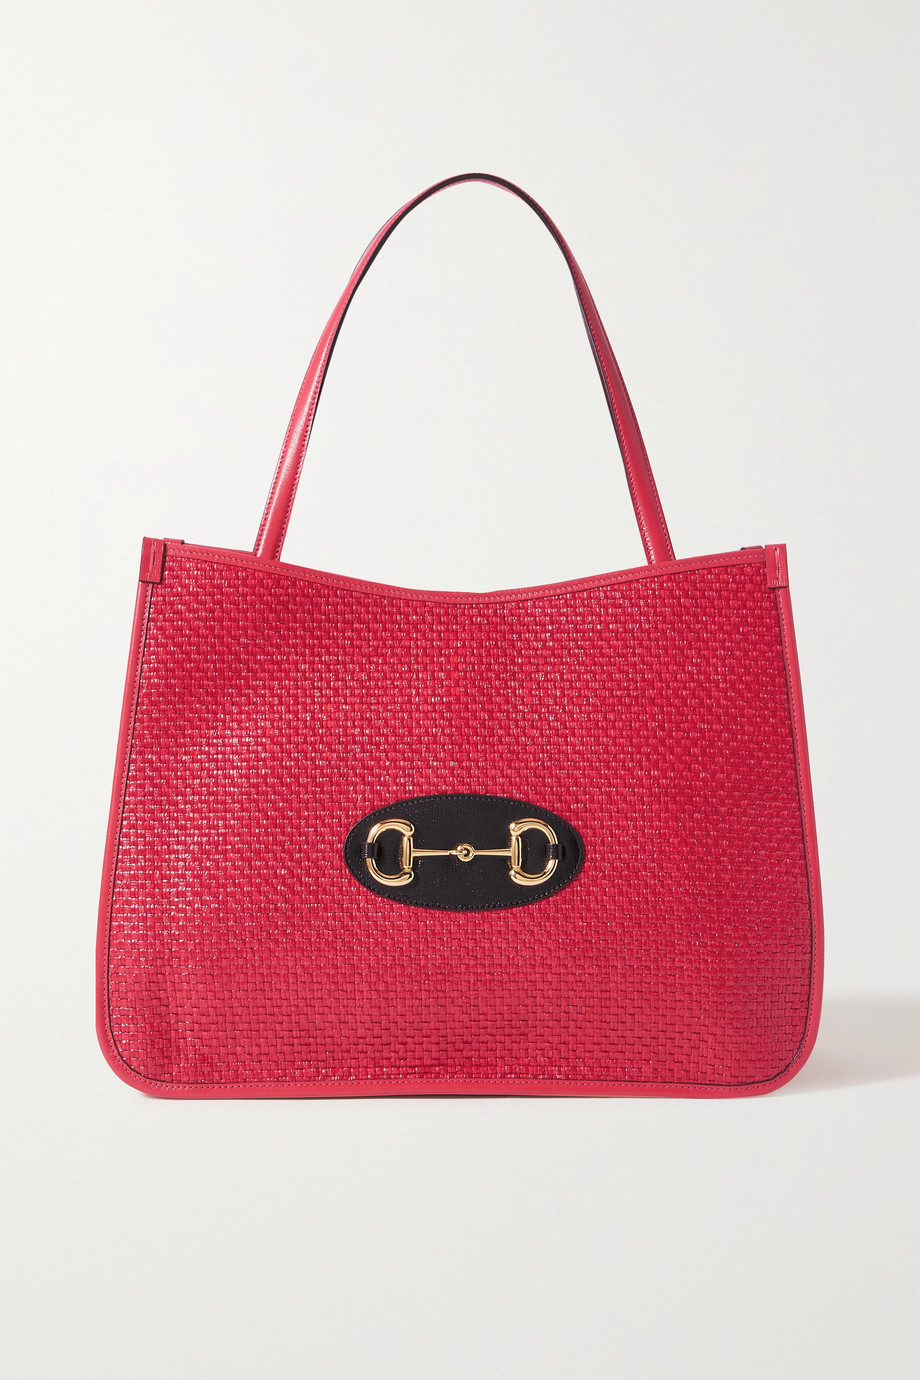 Gucci Horsebit 1955 leather-trimmed faux straw tote